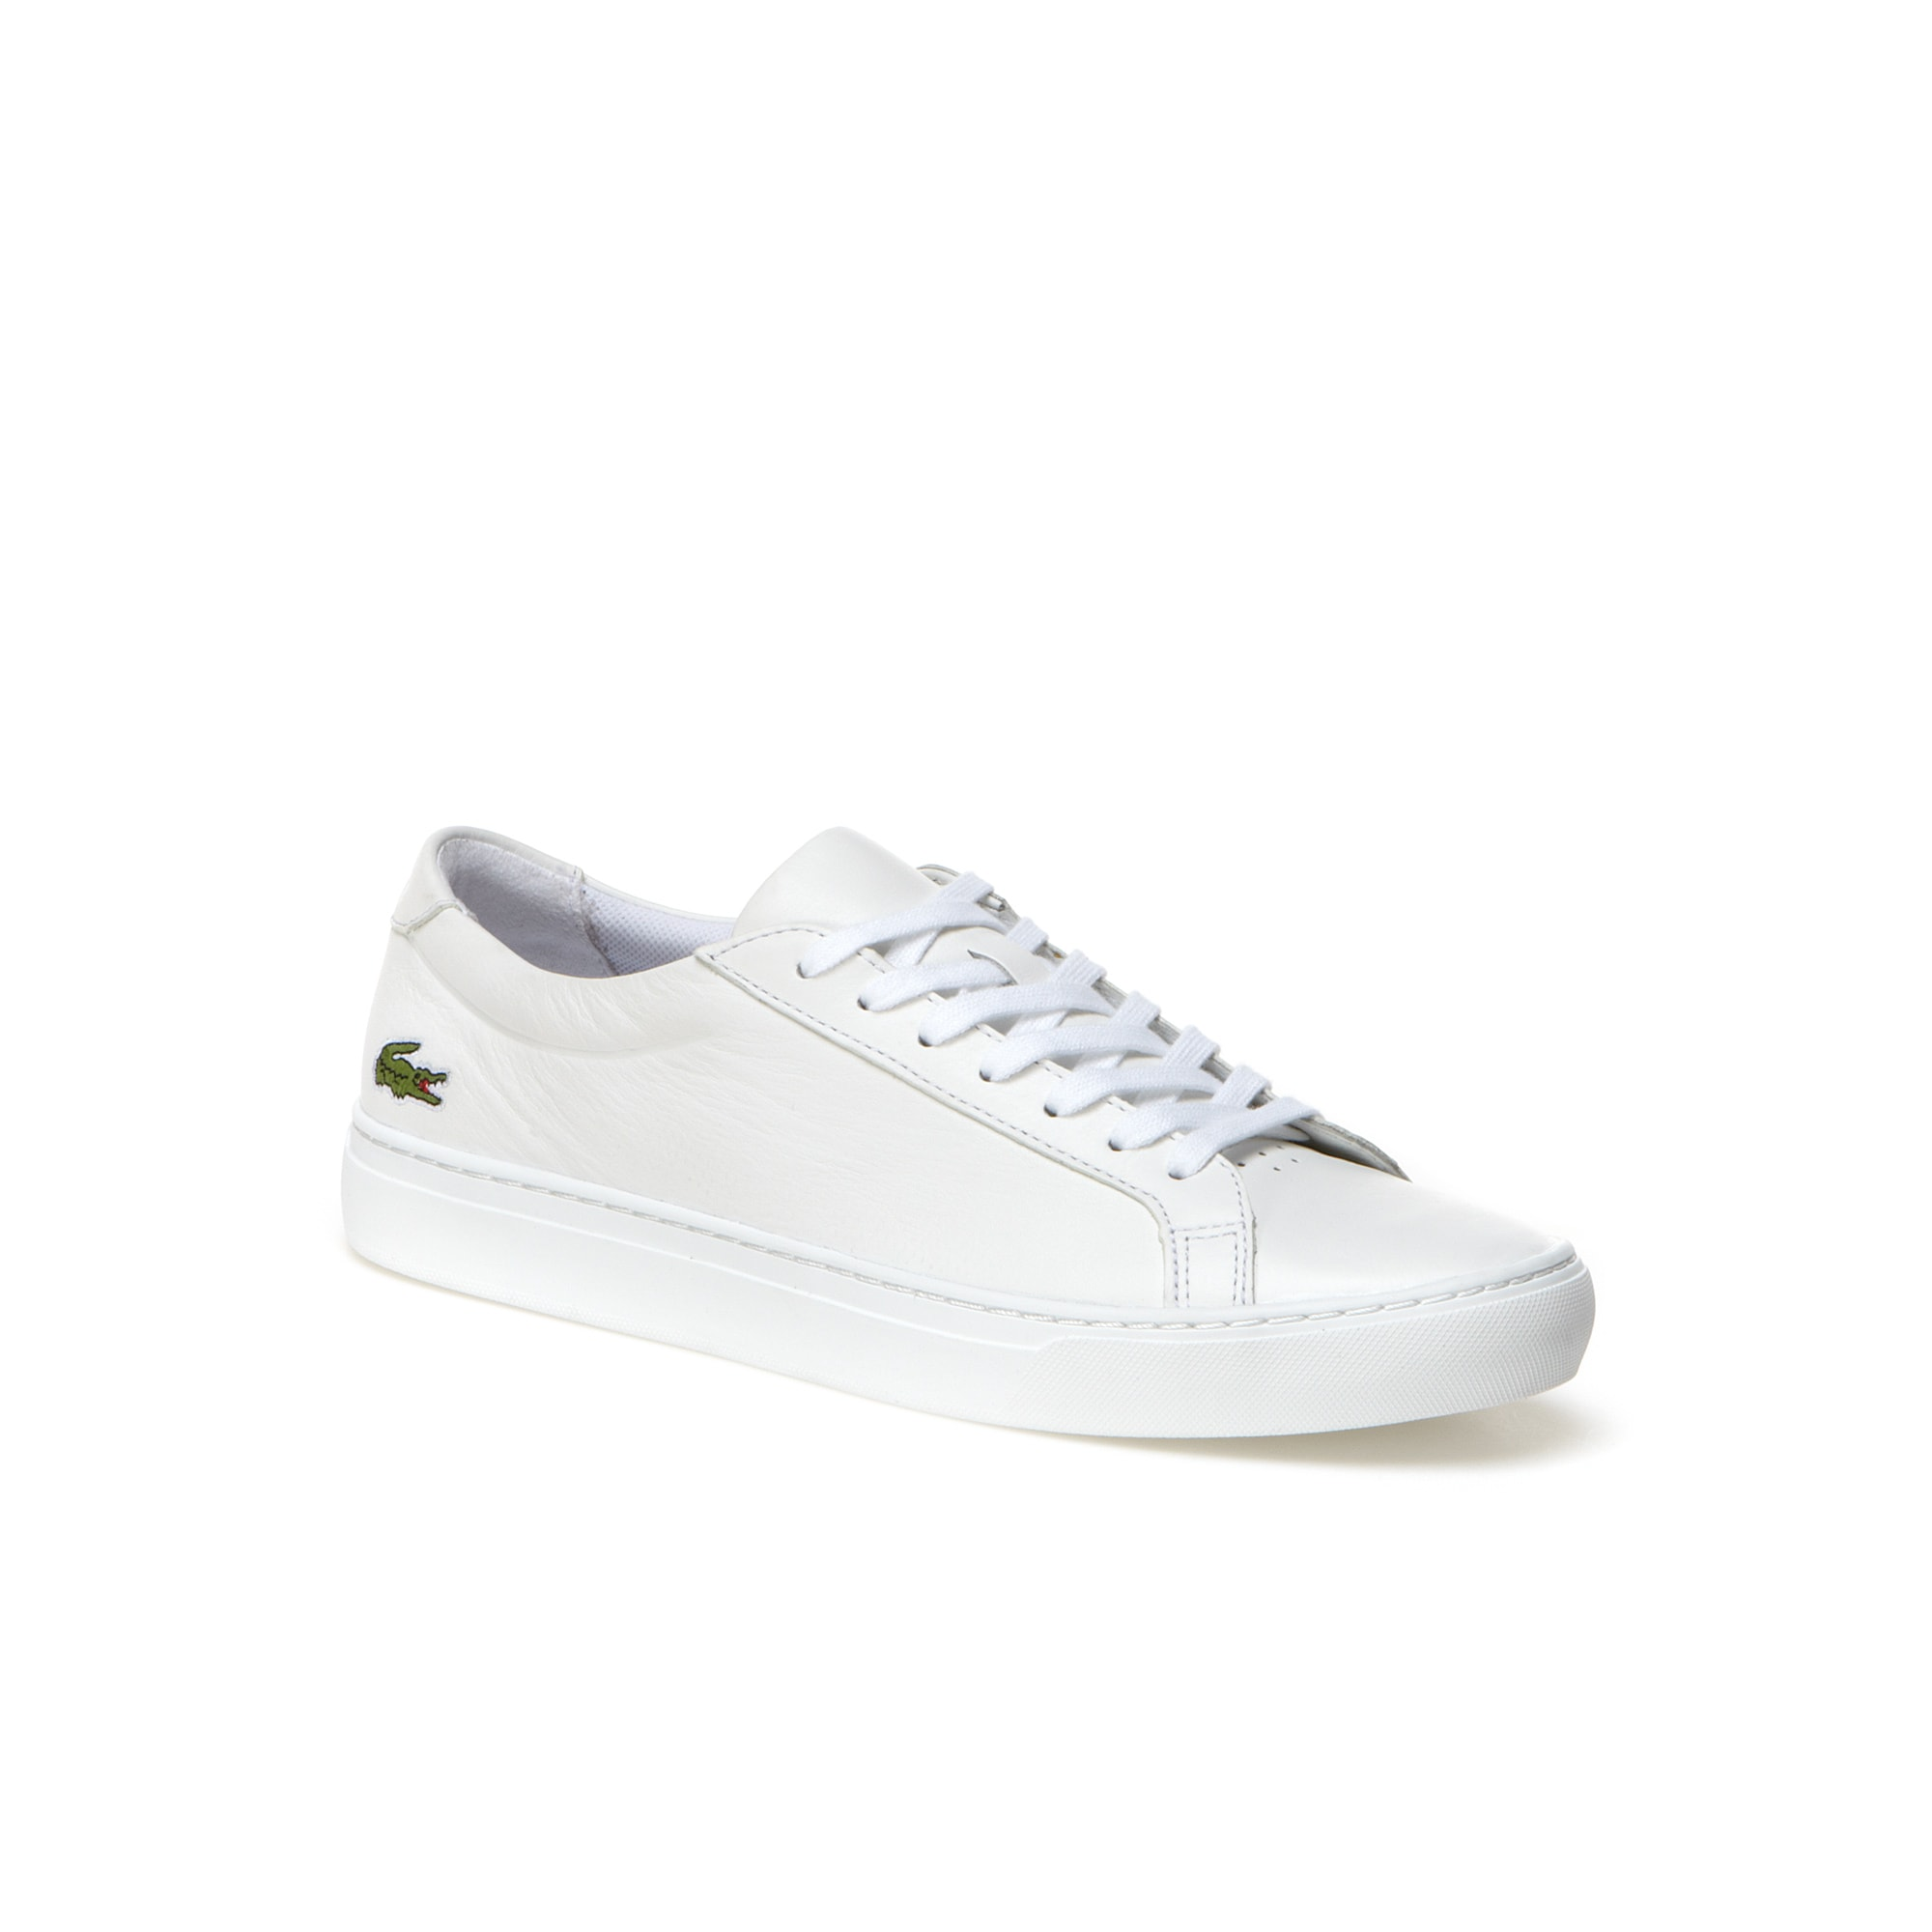 1c5971c92799 Men s L.12.12 Nappa Leather Trainers